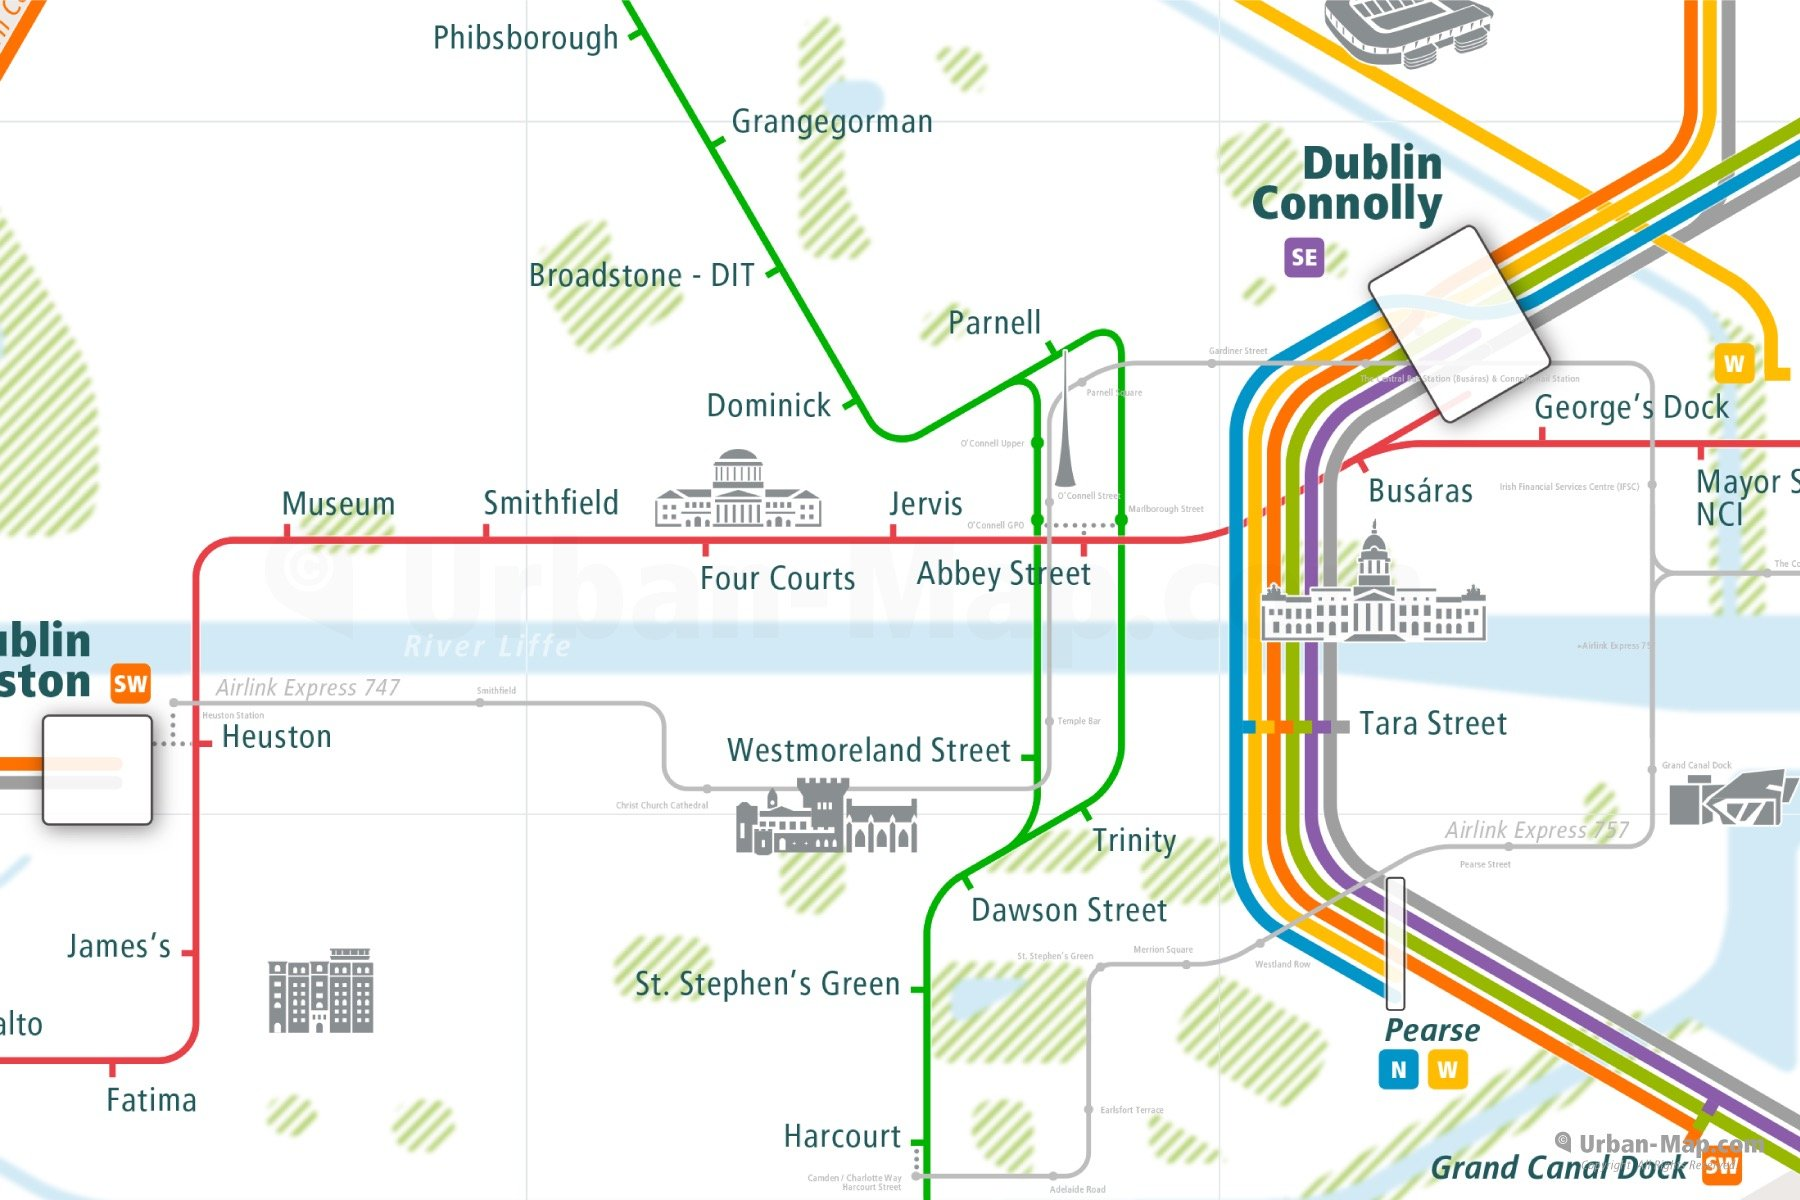 Dublin City Rail Map shows the train and public transportation routes of tram, Airlink Express, commuter train - Close-Up